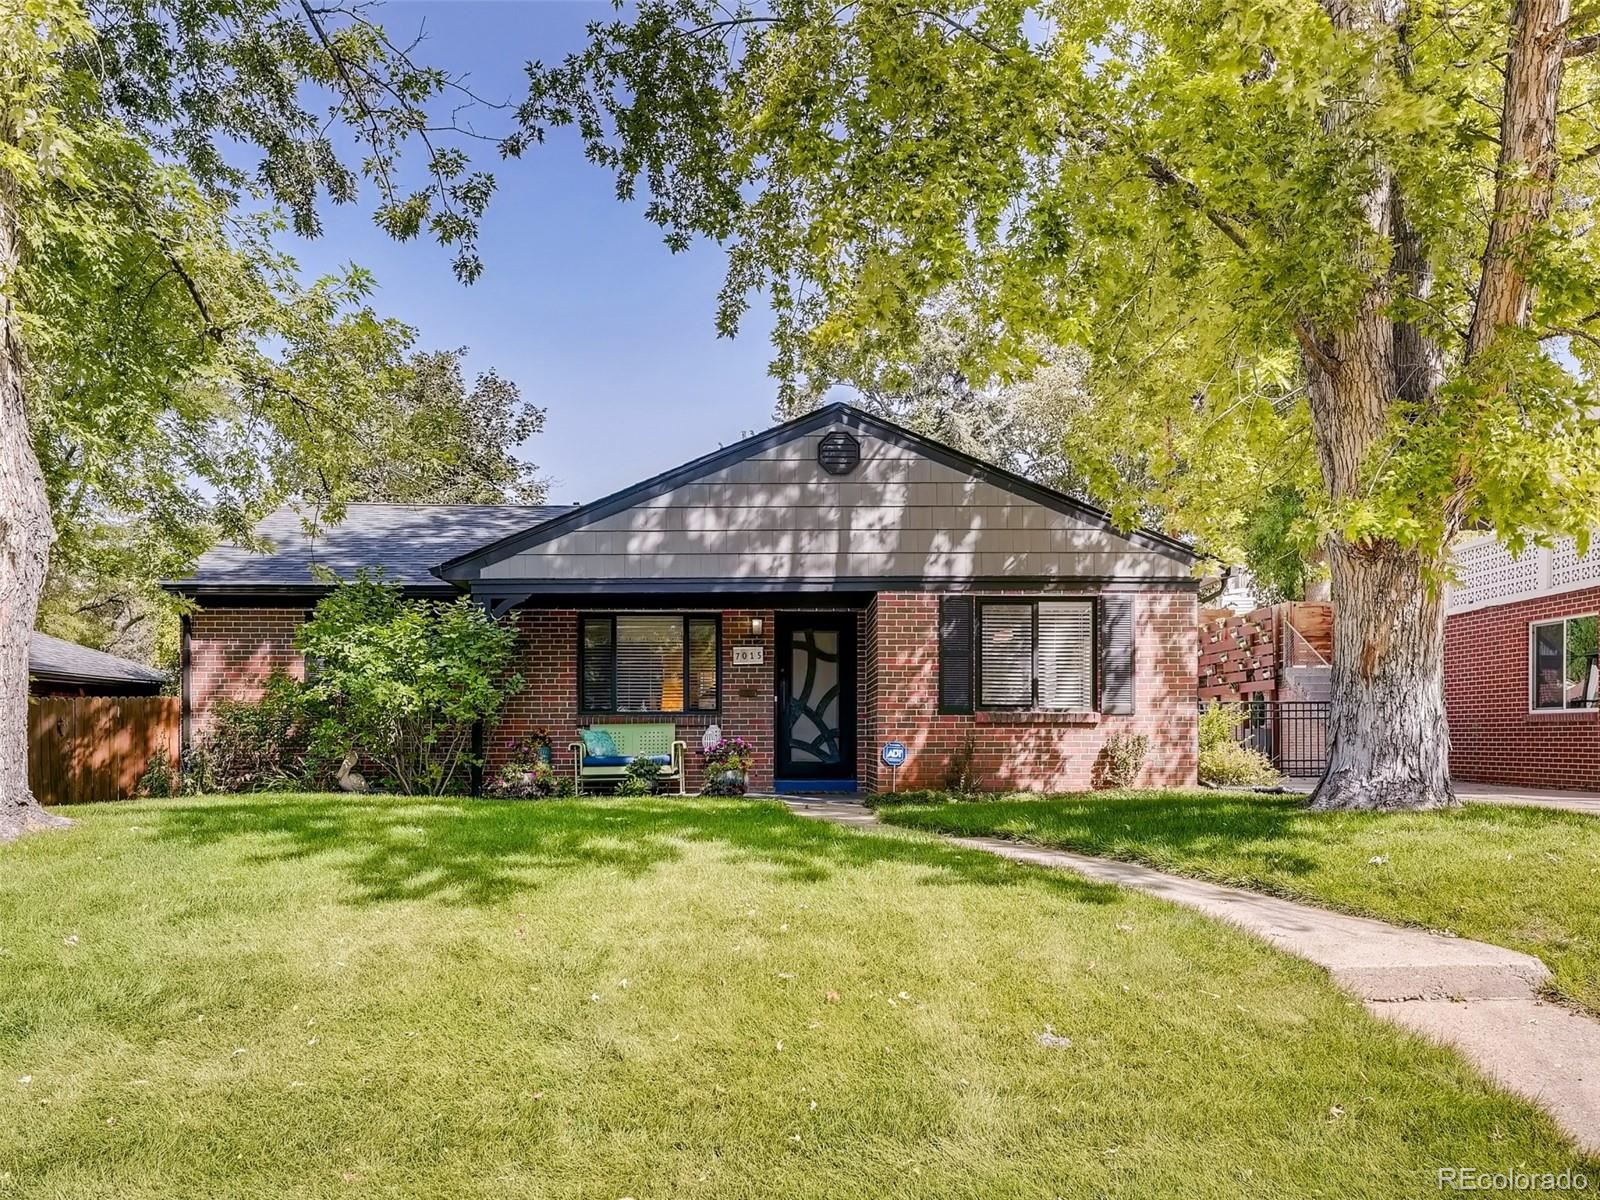 7015 E 11th Avenue, Denver, CO 80220 - #: 3875978